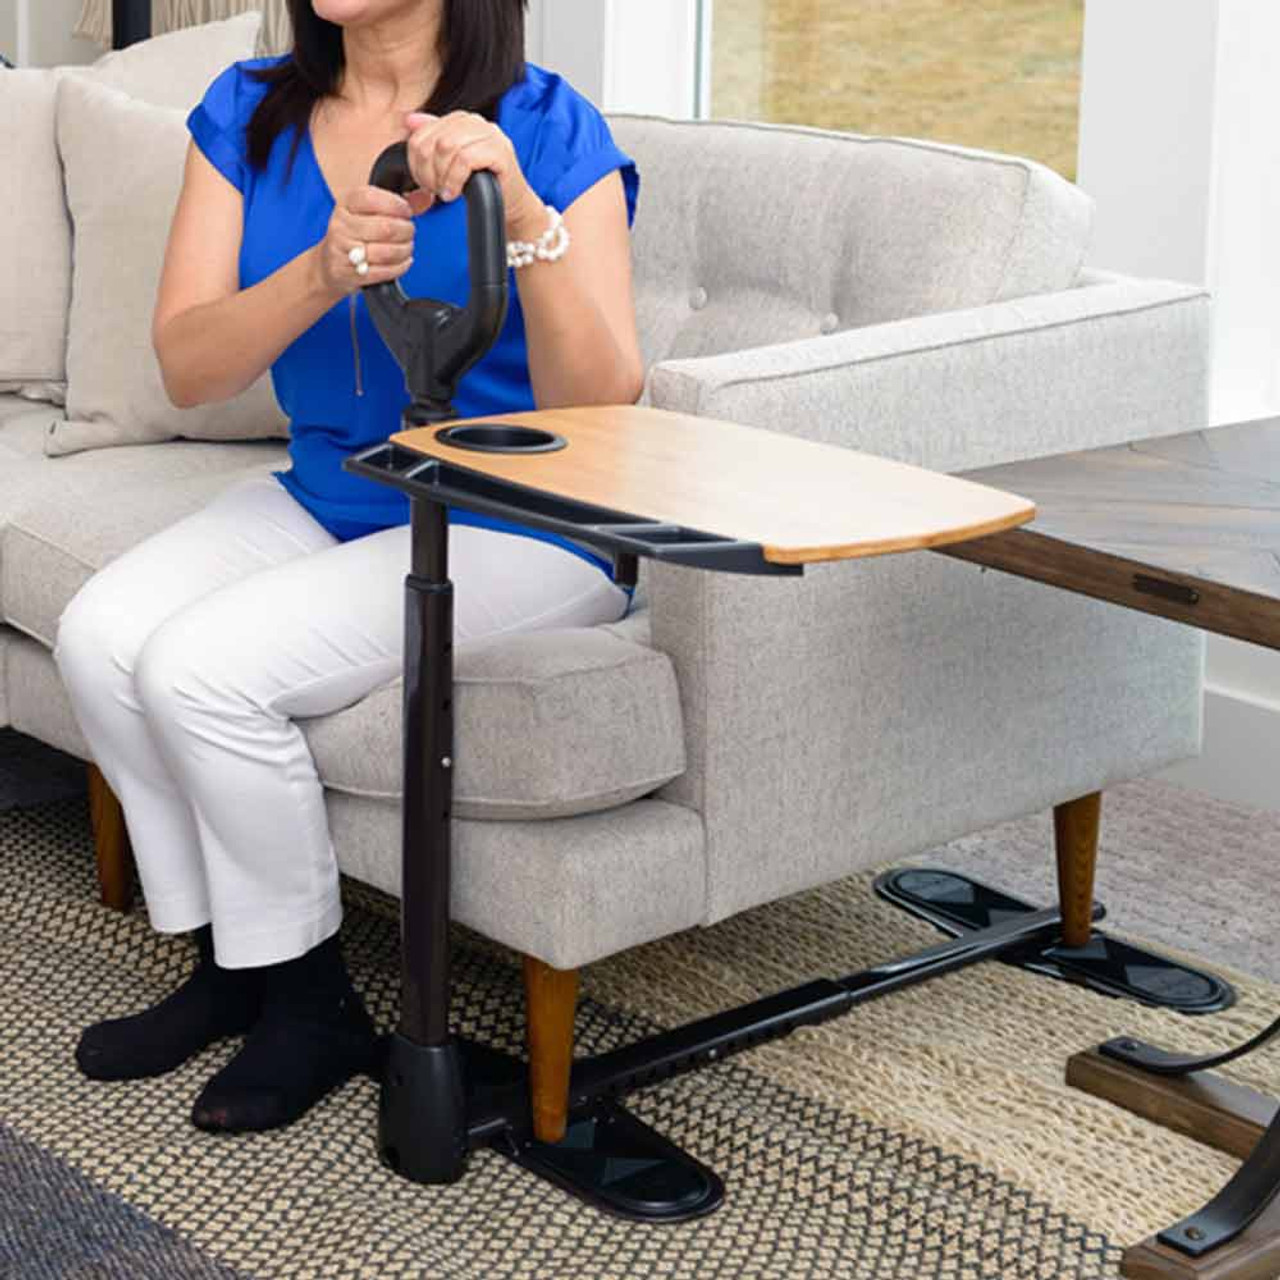 Couch Swivel Tray with Cane CSACT1 Stand Assist